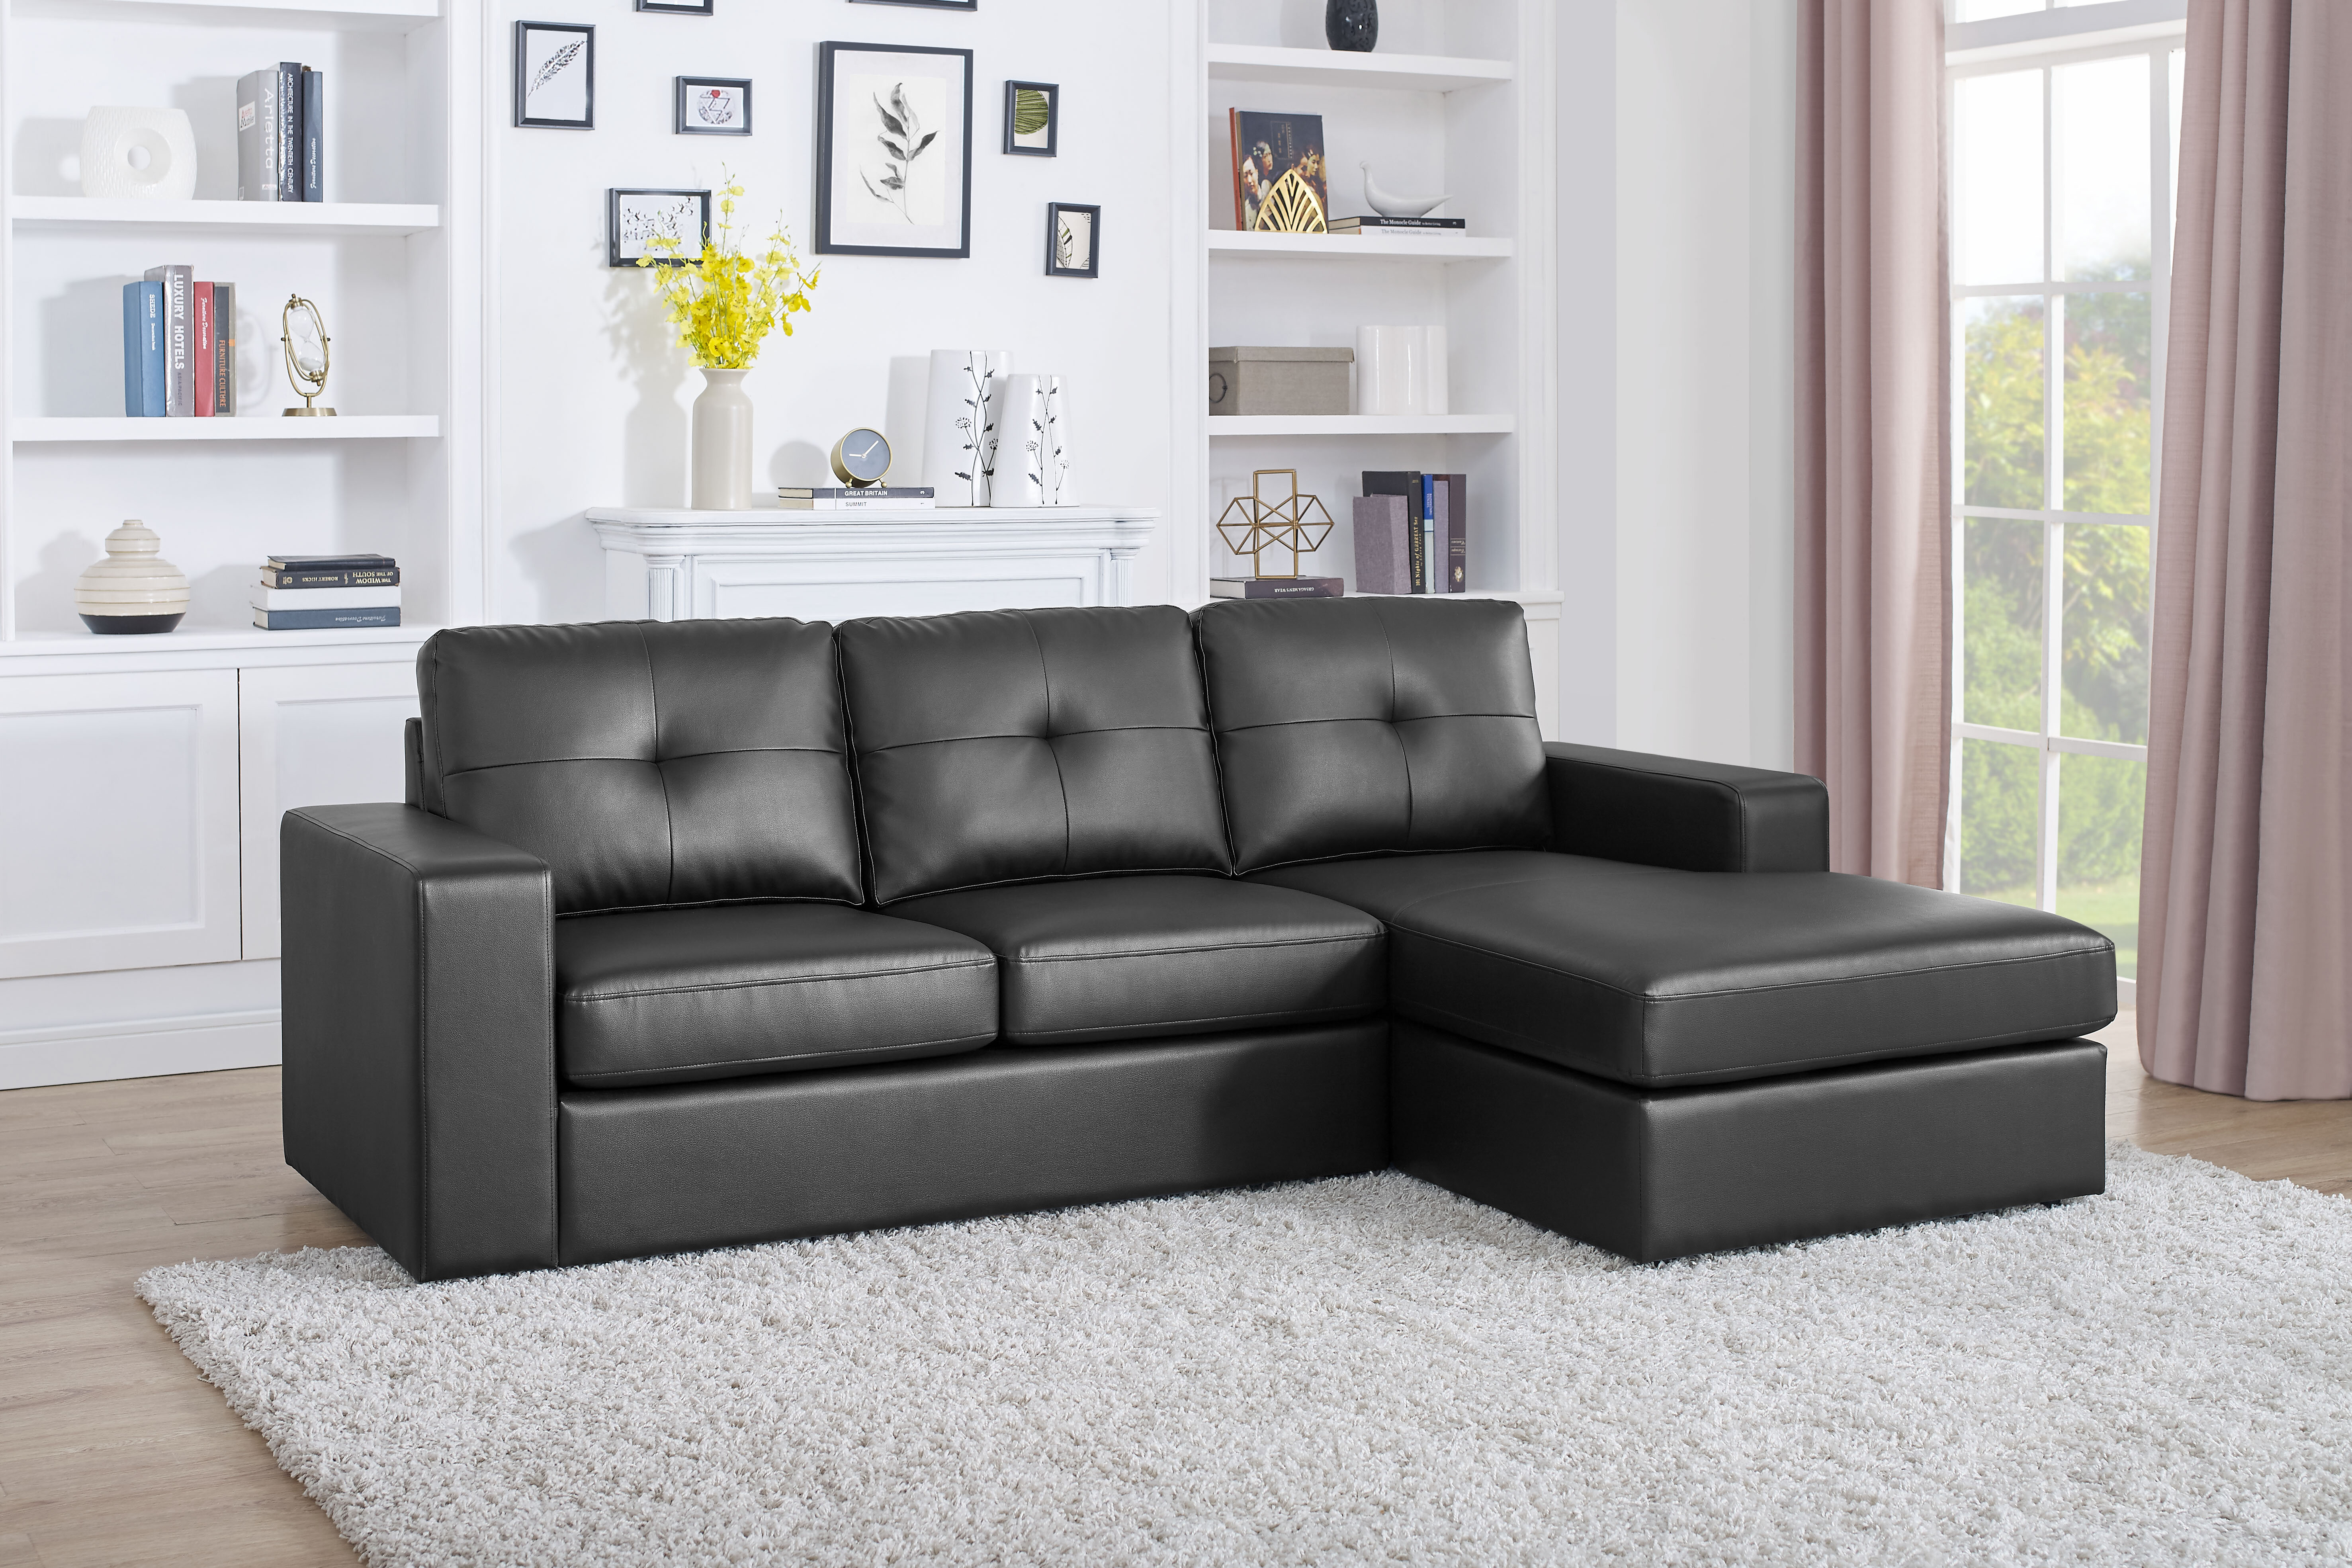 Awesome Auton 3 Seater Right Hand Facing Sectional Sofa With Ottoman Short Links Chair Design For Home Short Linksinfo